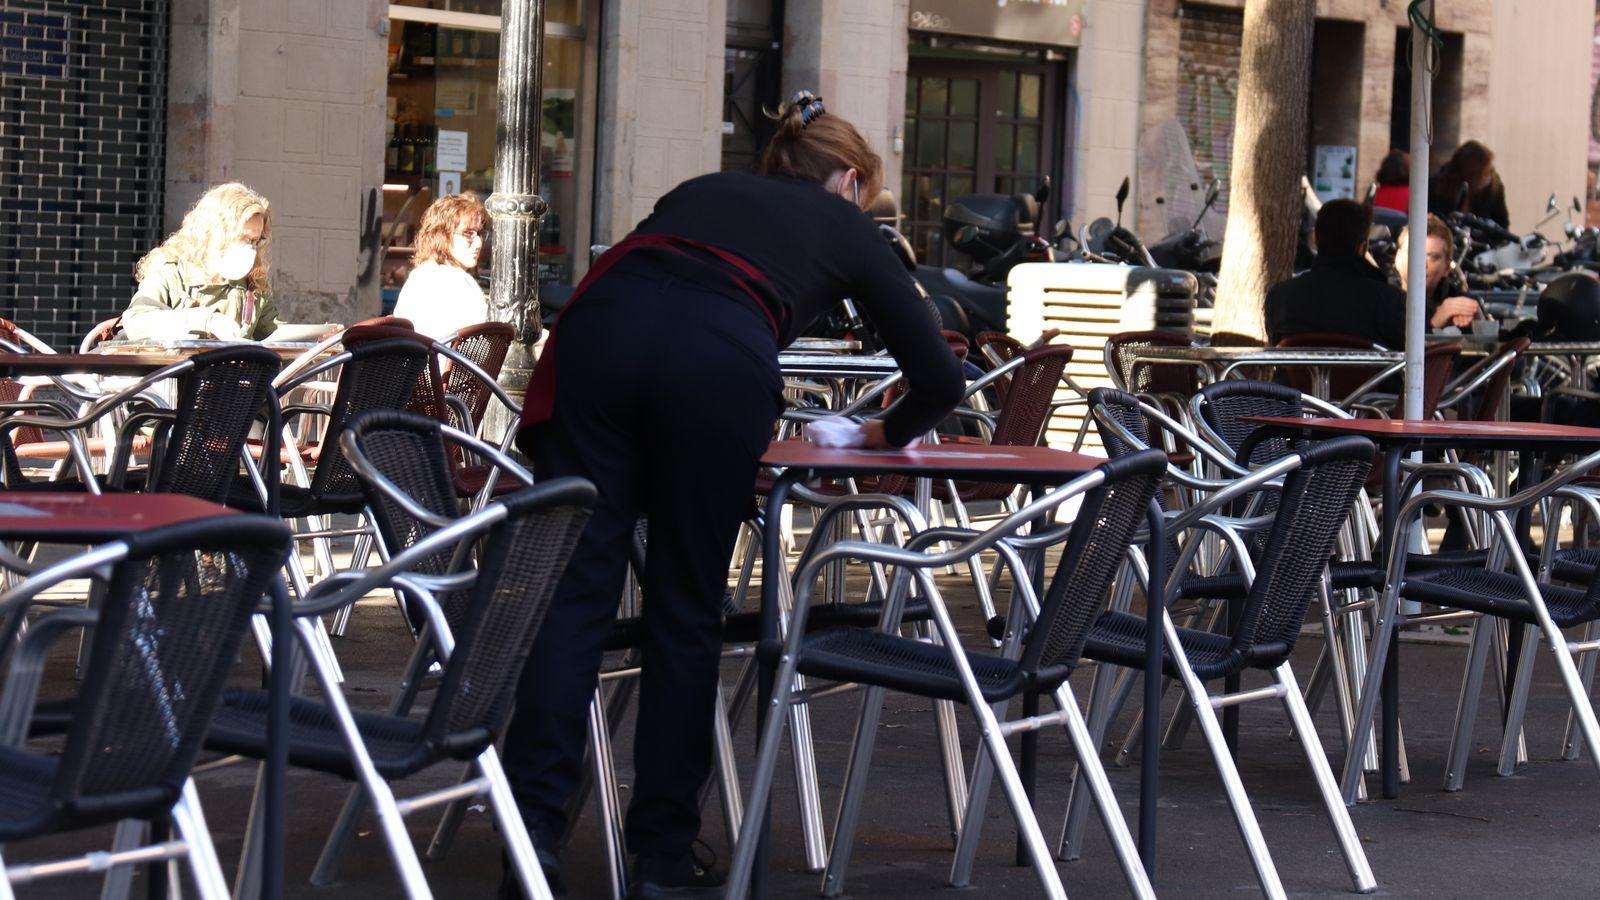 70% of Barcelona's and restaurants reopen, but request longer opening hours